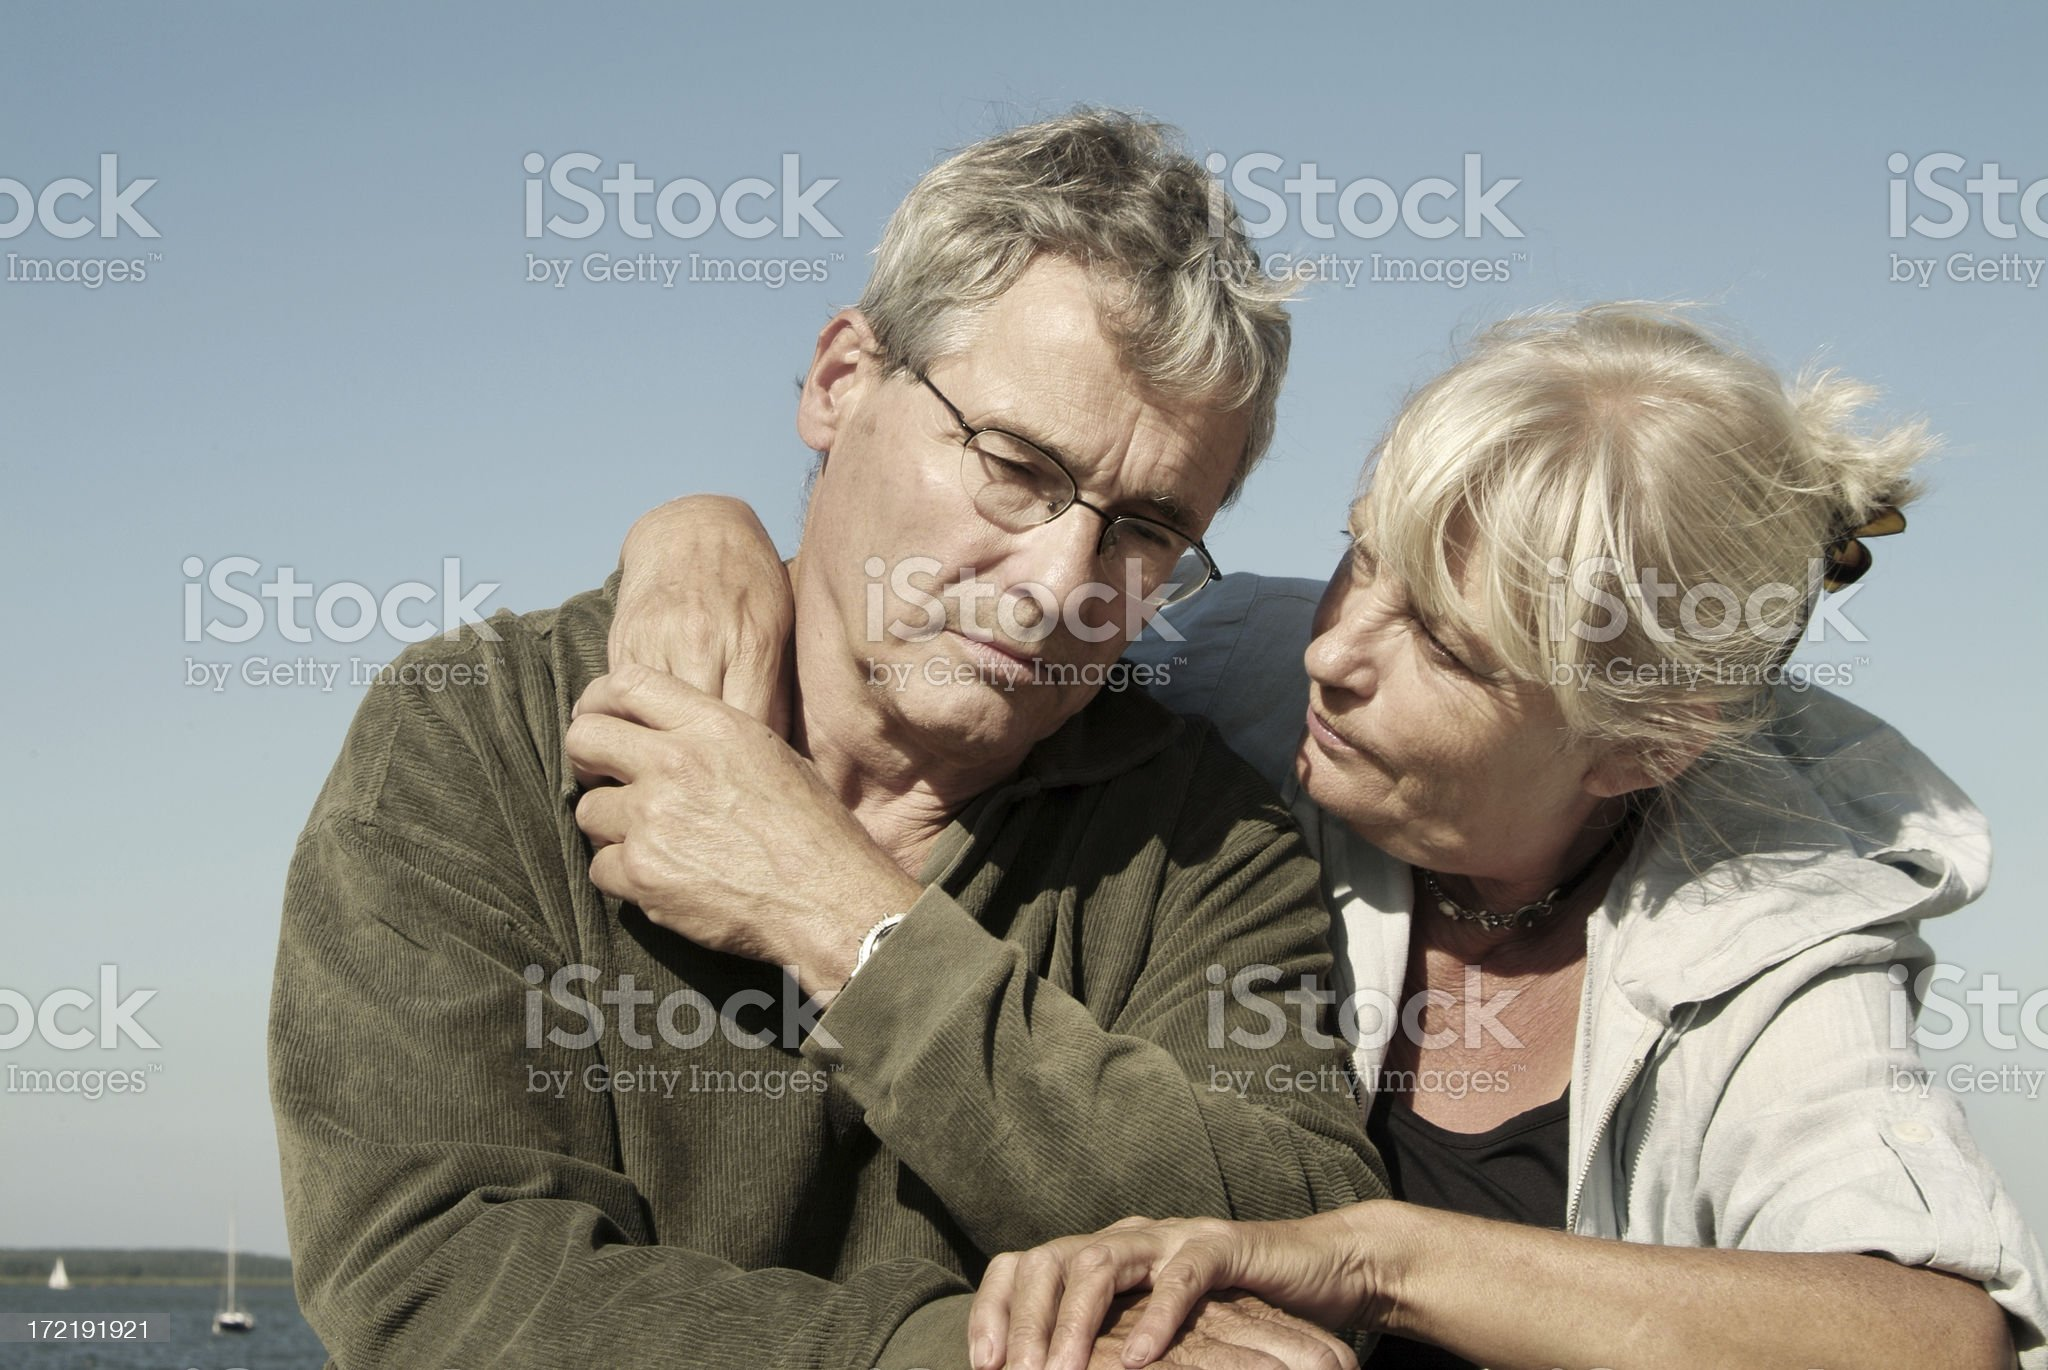 Grieving 02 royalty-free stock photo